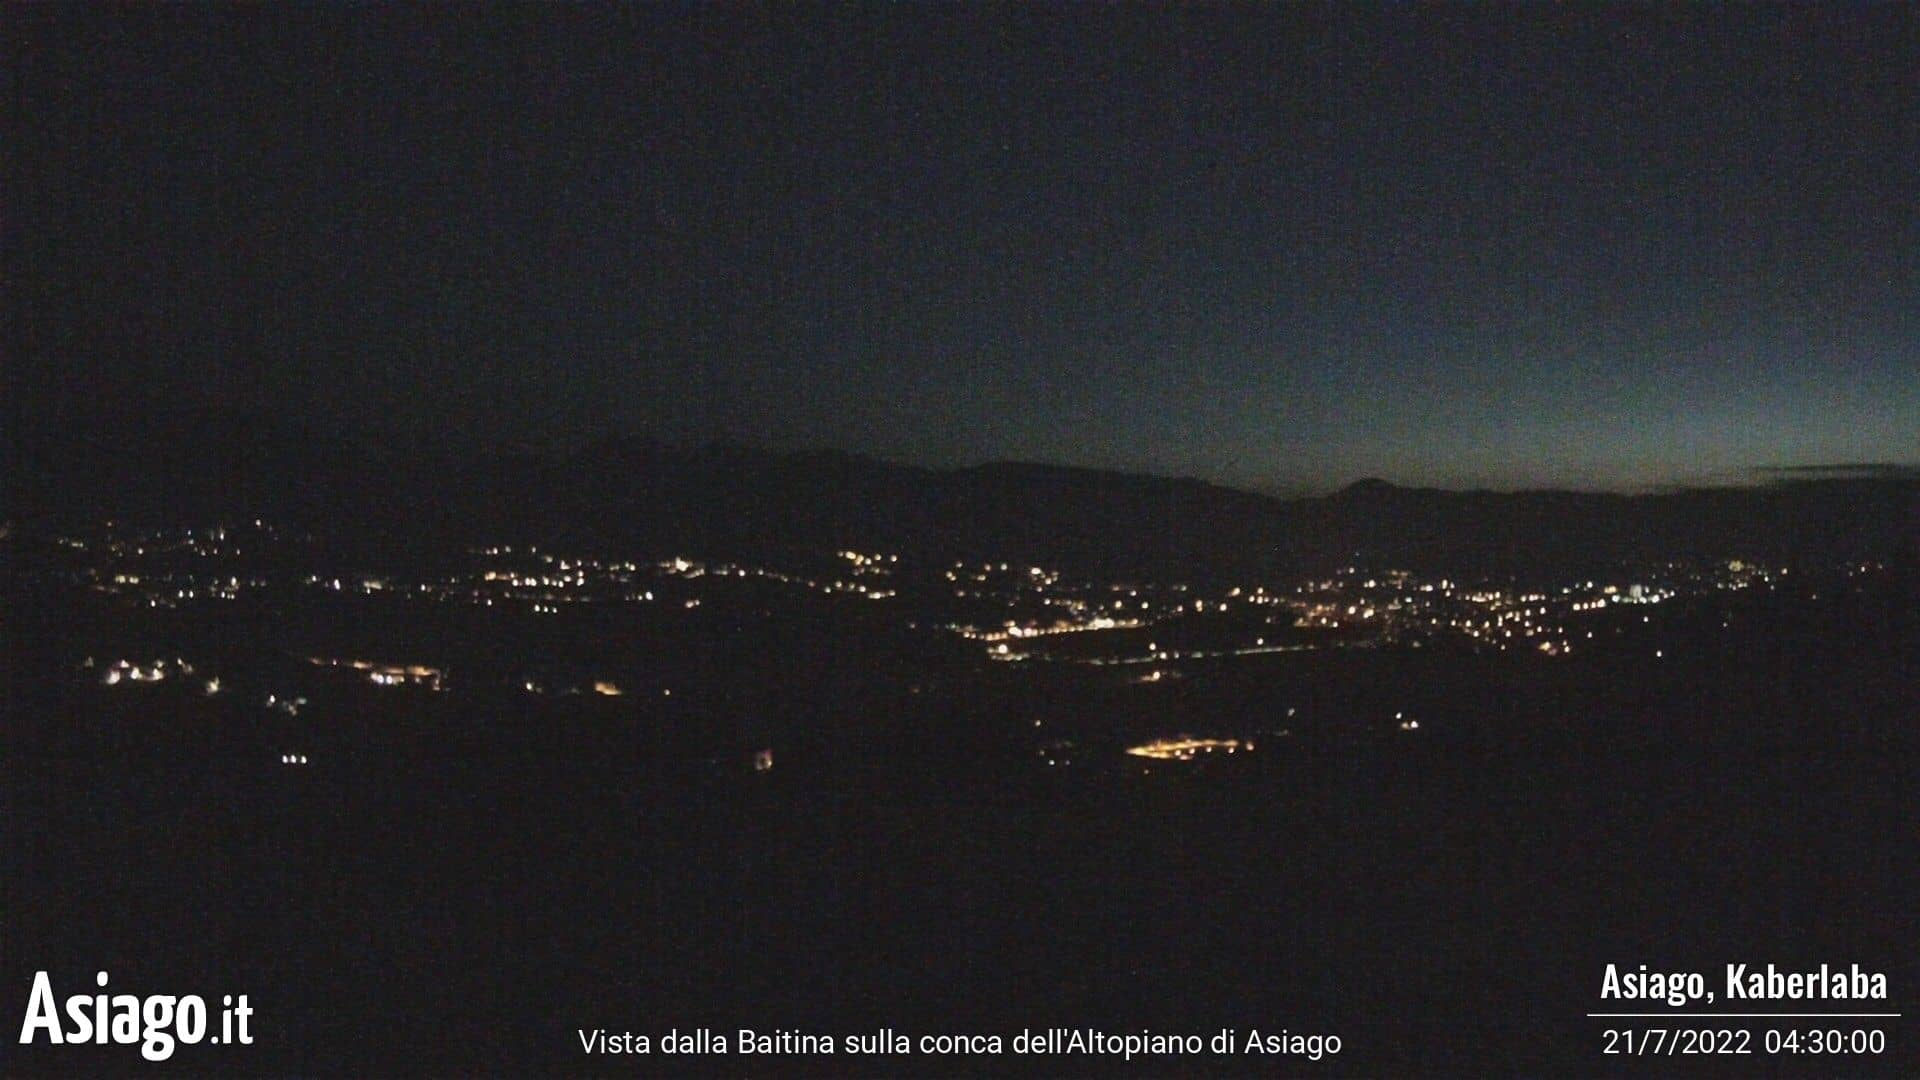 Immagine da Asiago.it